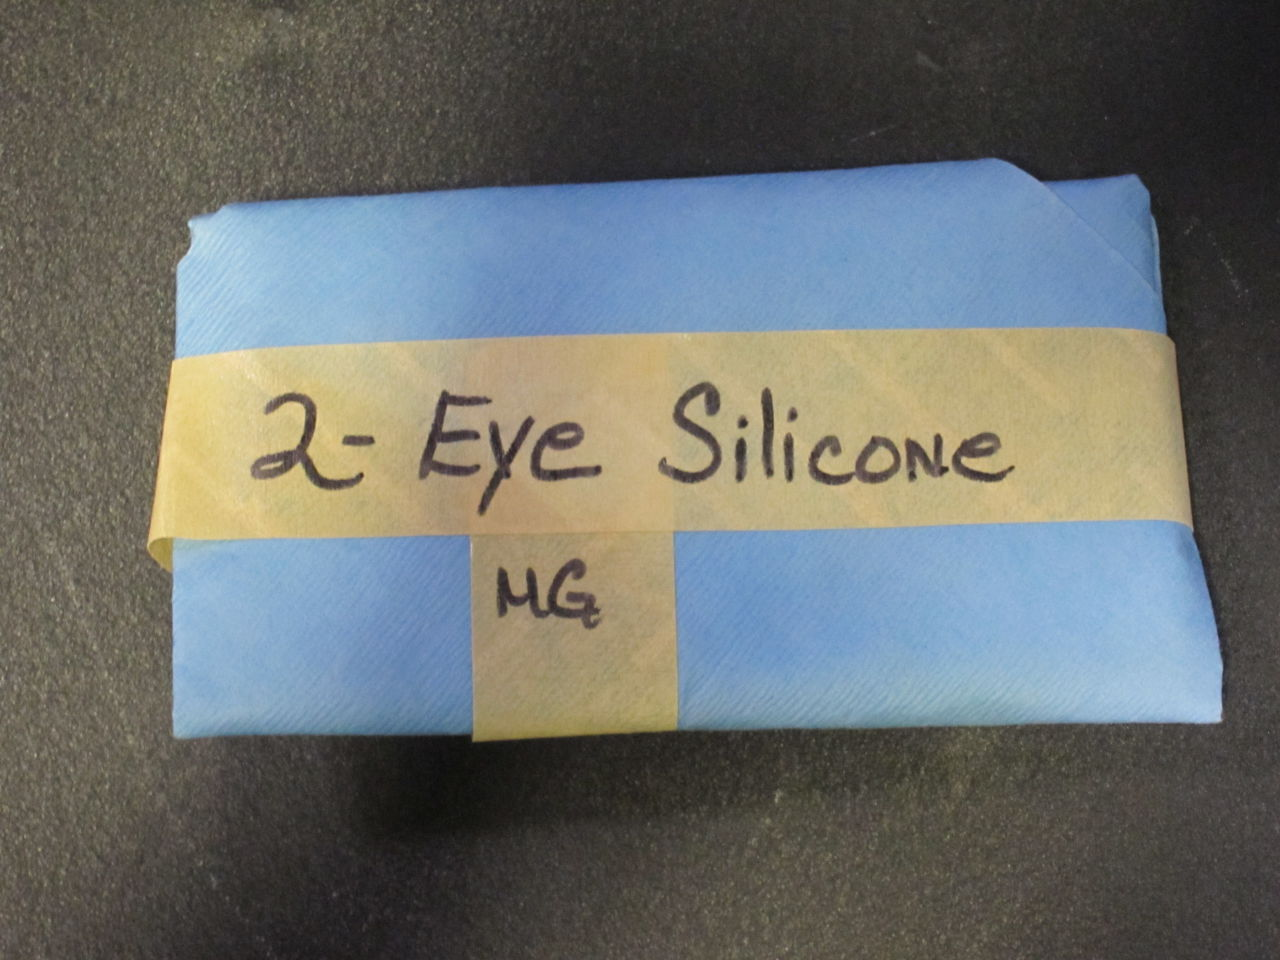 Eye Silicone - Lot of 2